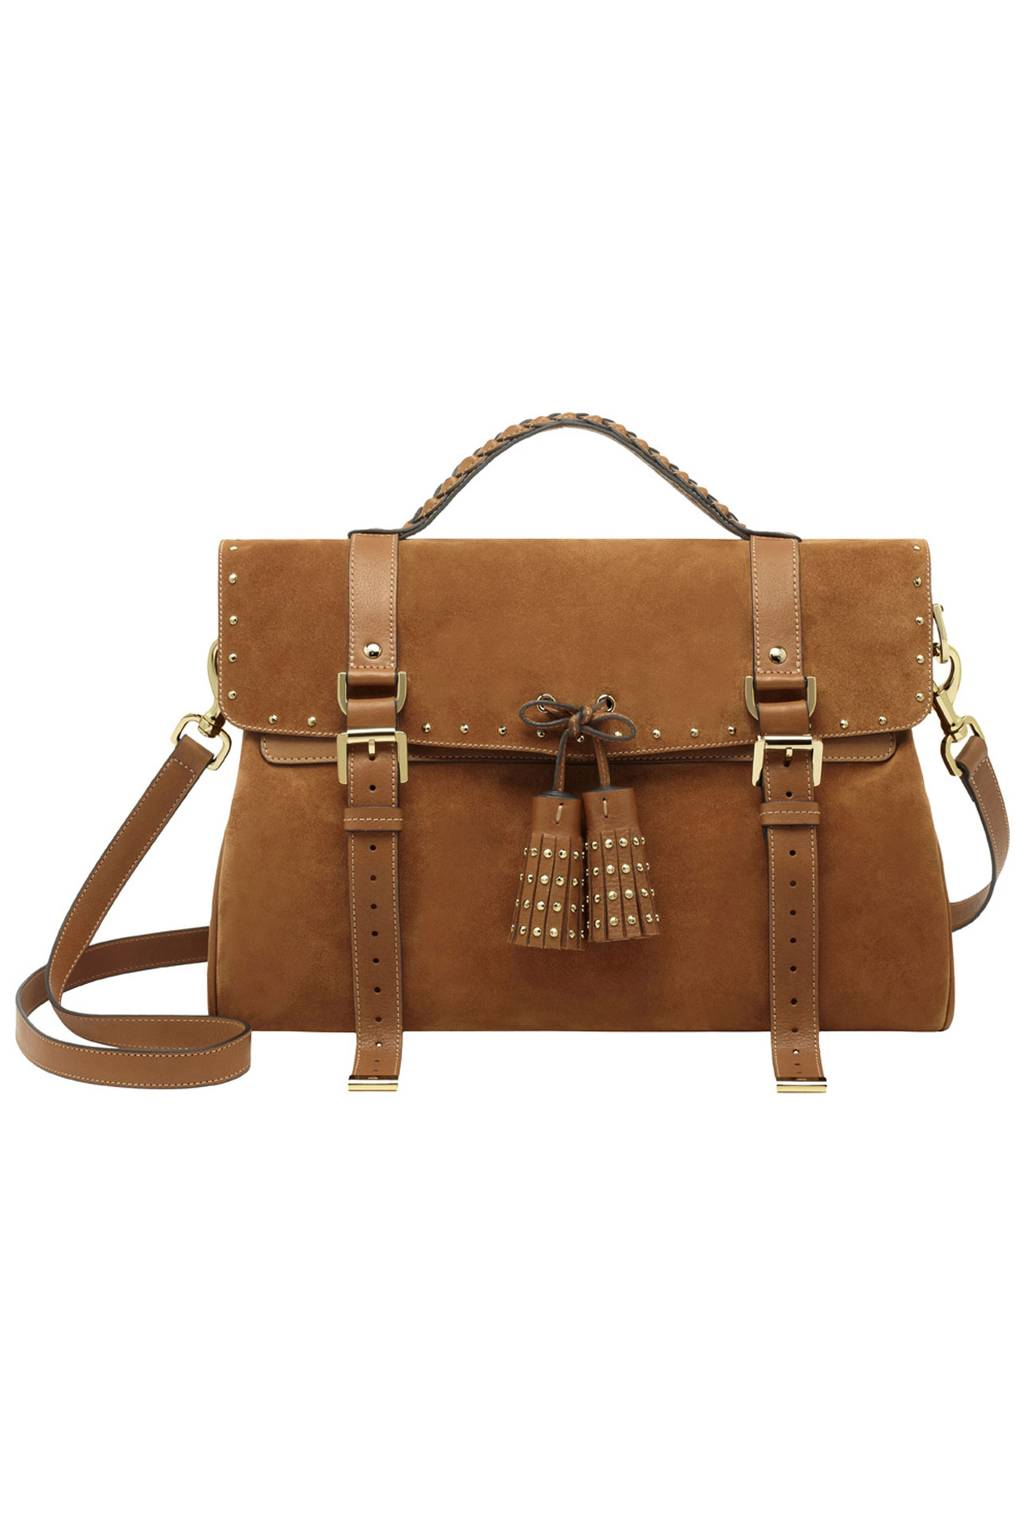 Mulberry Launches Tassel Bag Collection  92344829b24c2